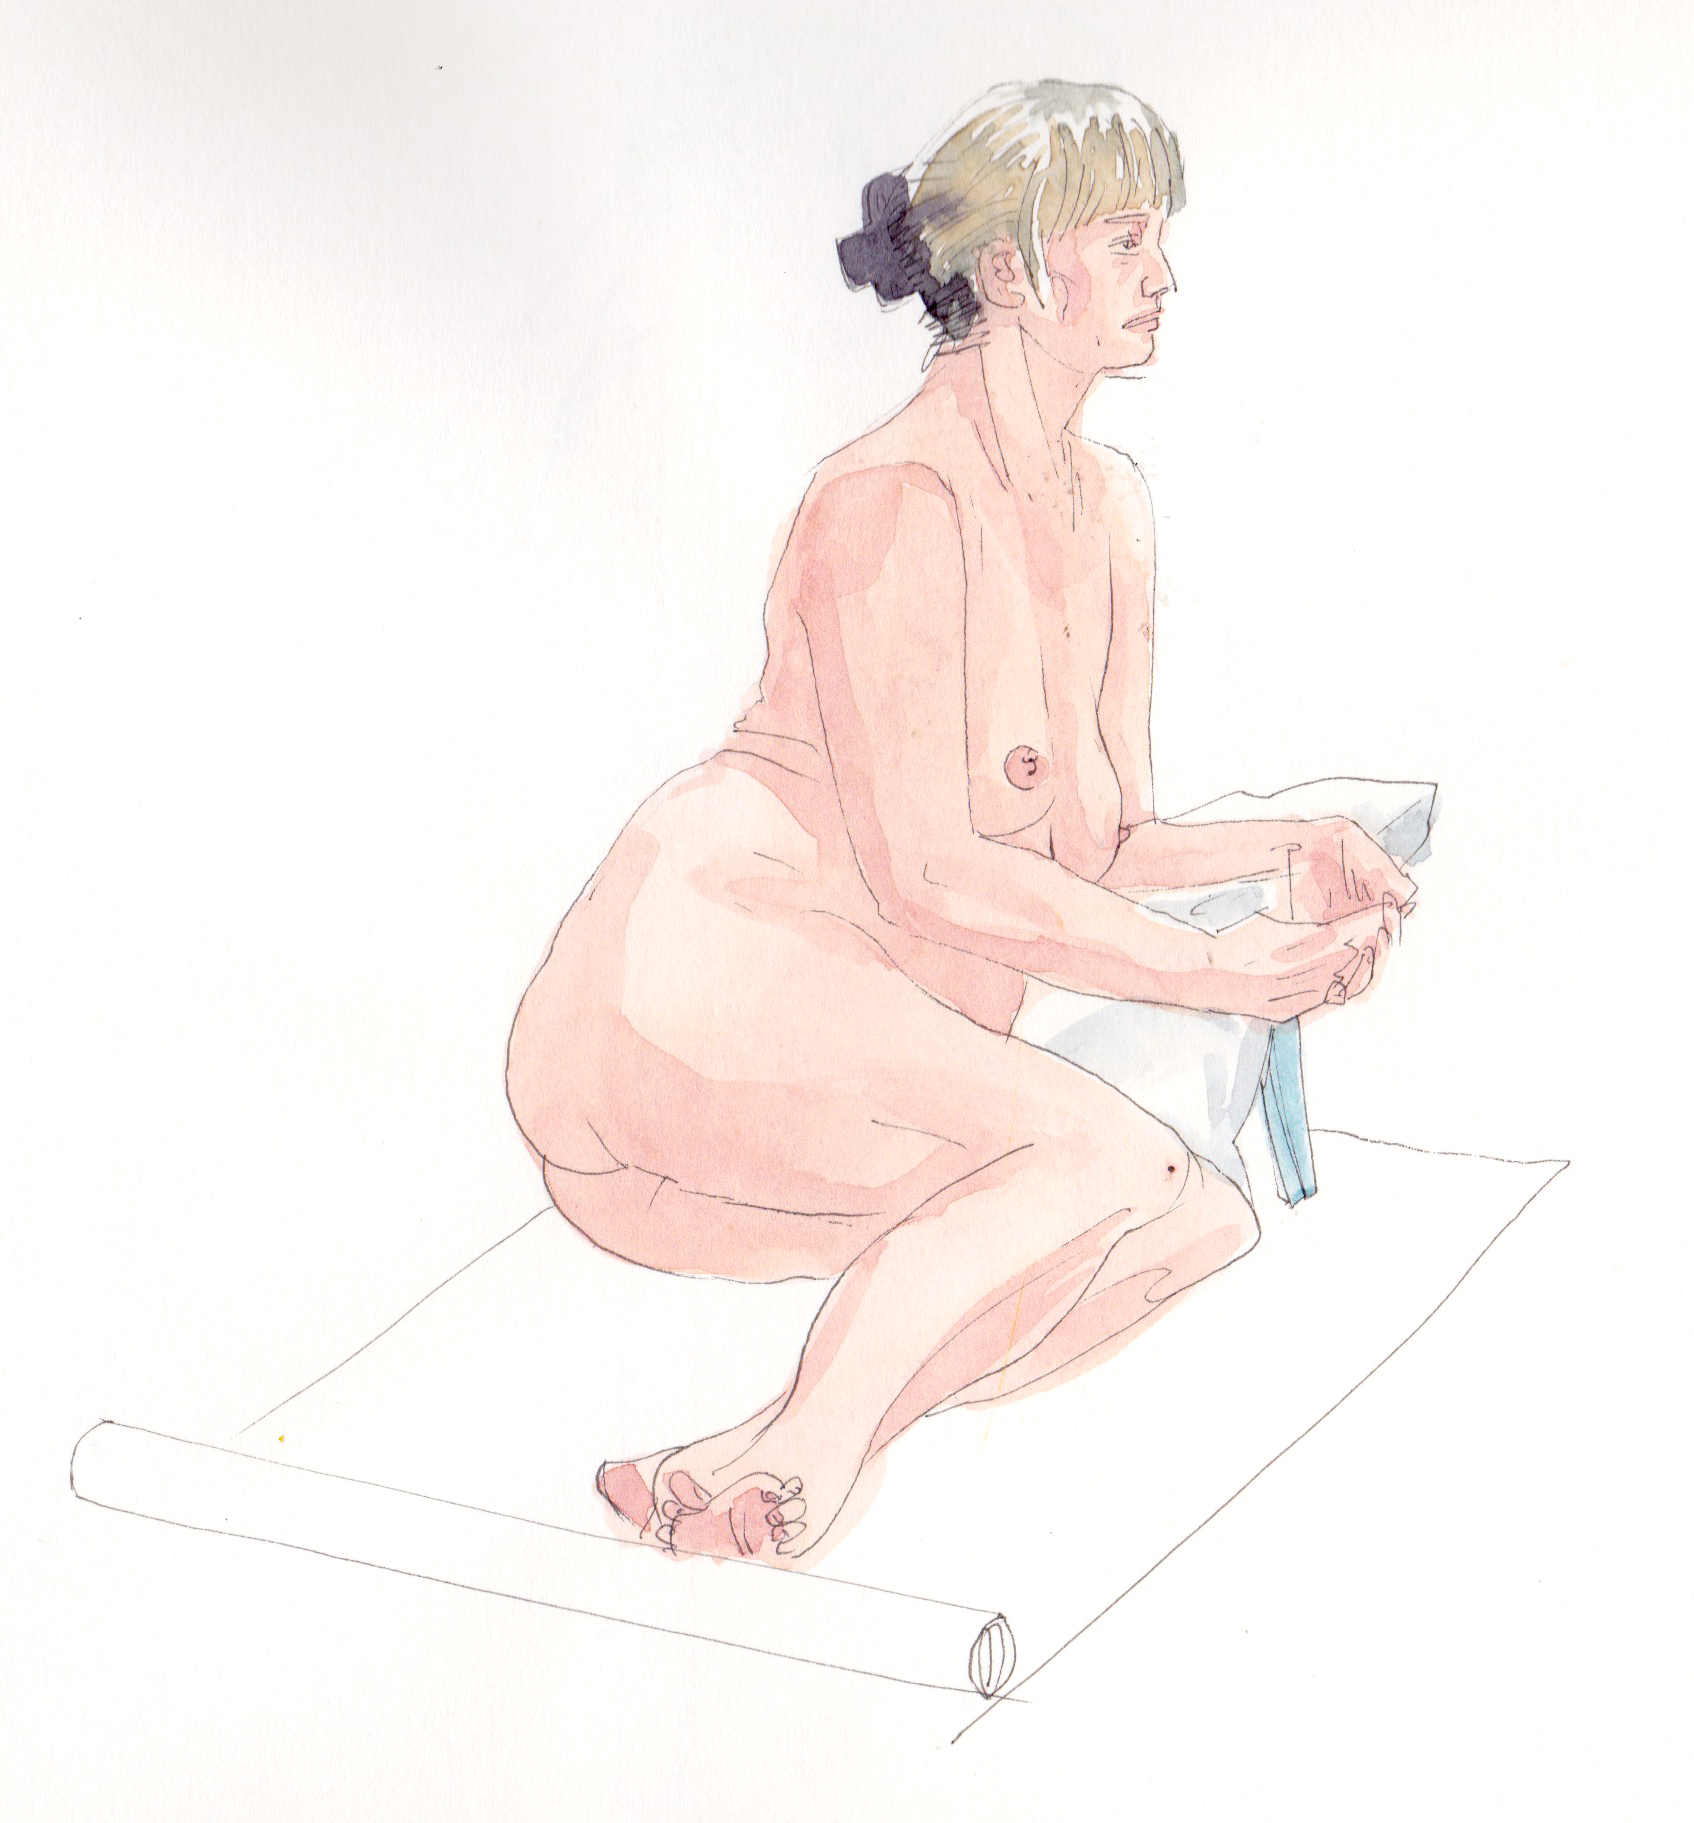 lifedrawing 14